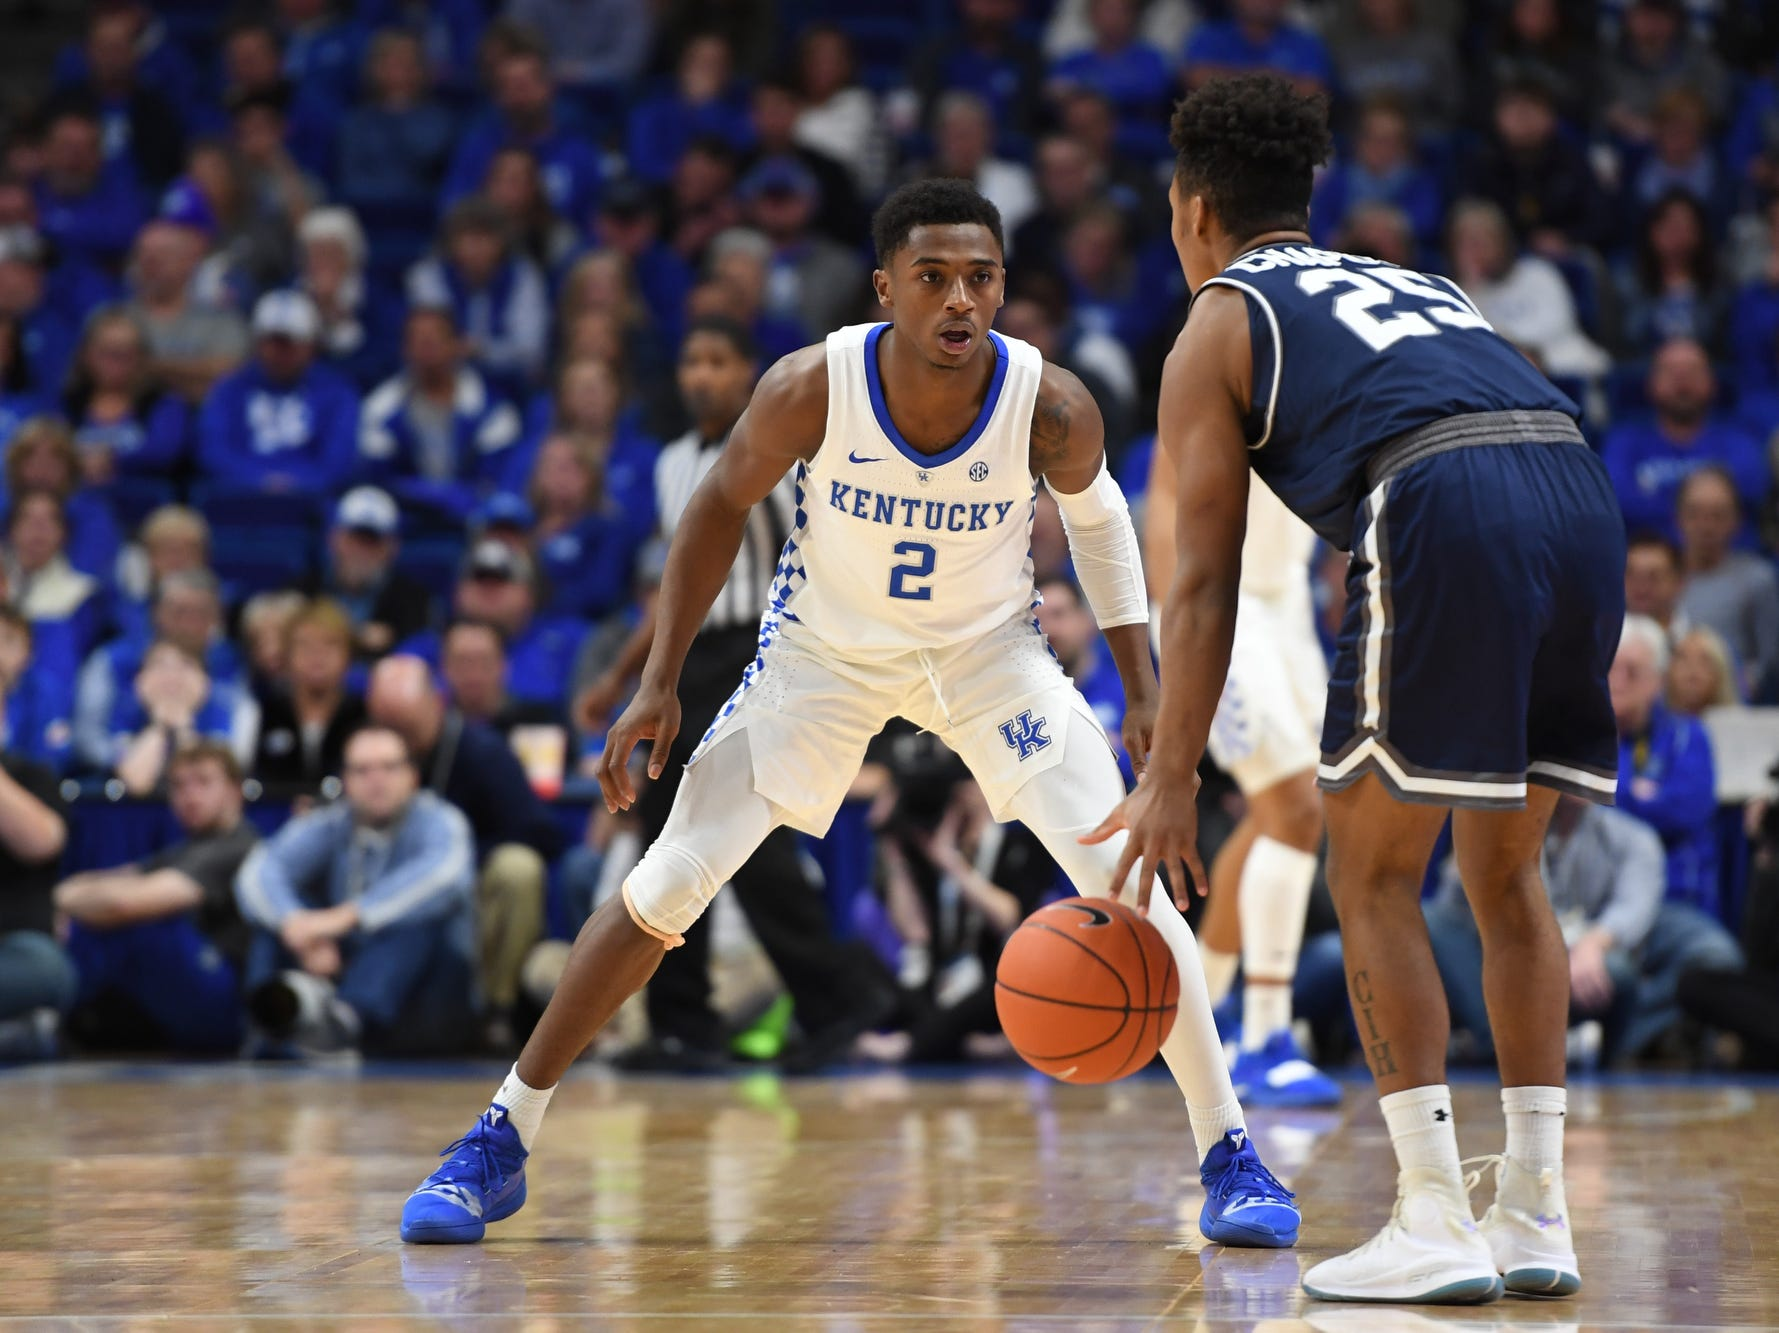 UK G Ashton Hagans defends the ball during the University of Kentucky mens basketball game against Monmouth at Rupp Arena in Lexington, Kentucky on Wednesday, November 28, 2018.